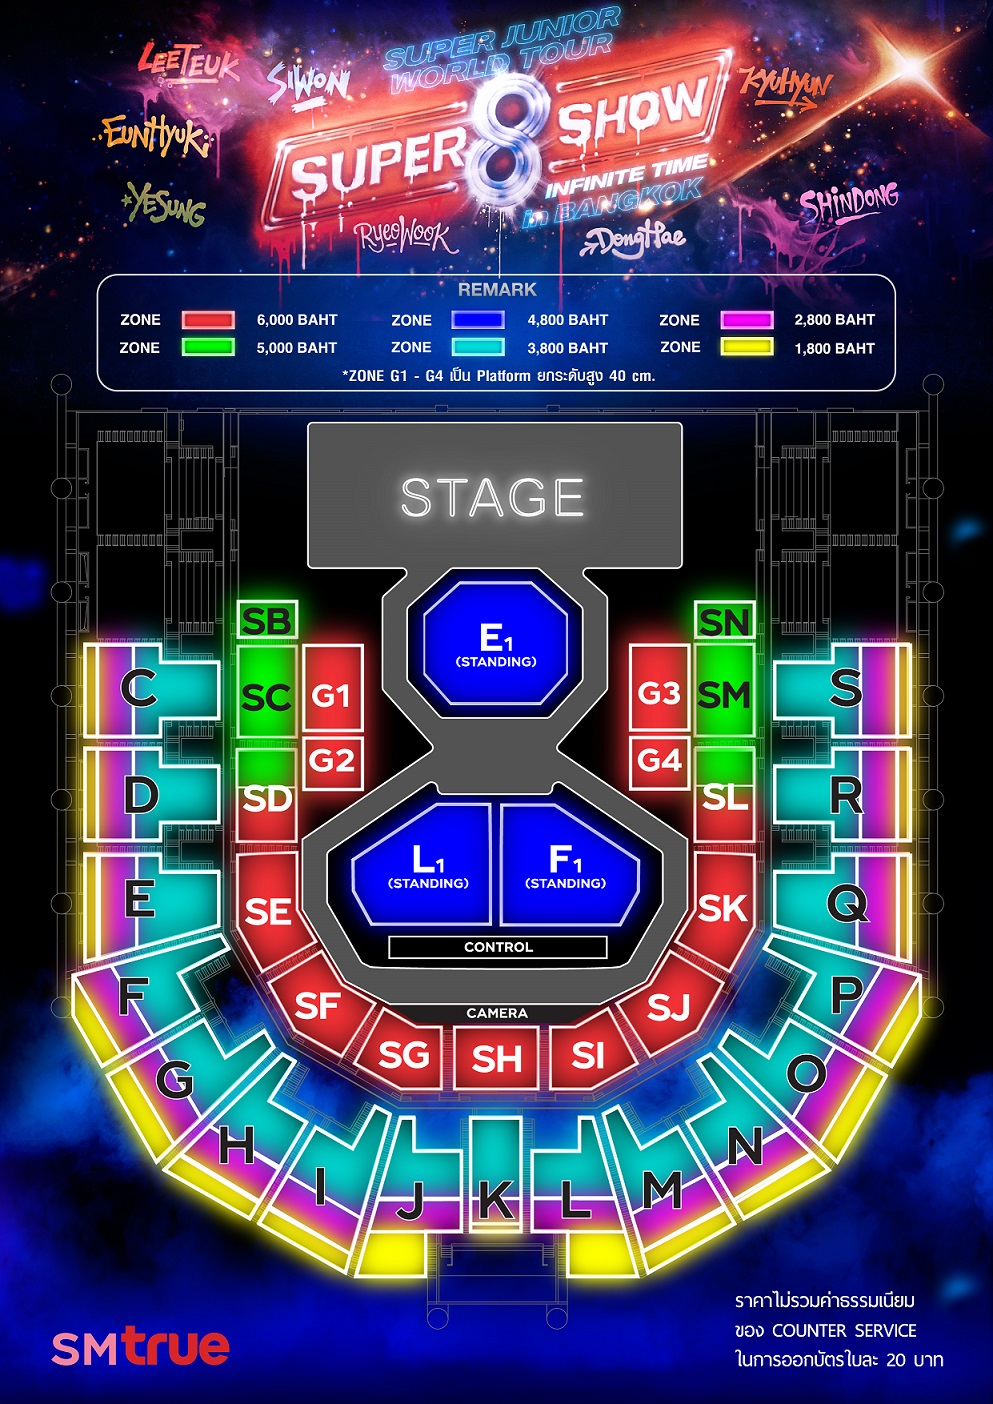 [SEAT PLAN] 'SUPER JUNIOR WORLD TOUR - SUPER SHOW 8  INFINITE TIME' in BANGKOK